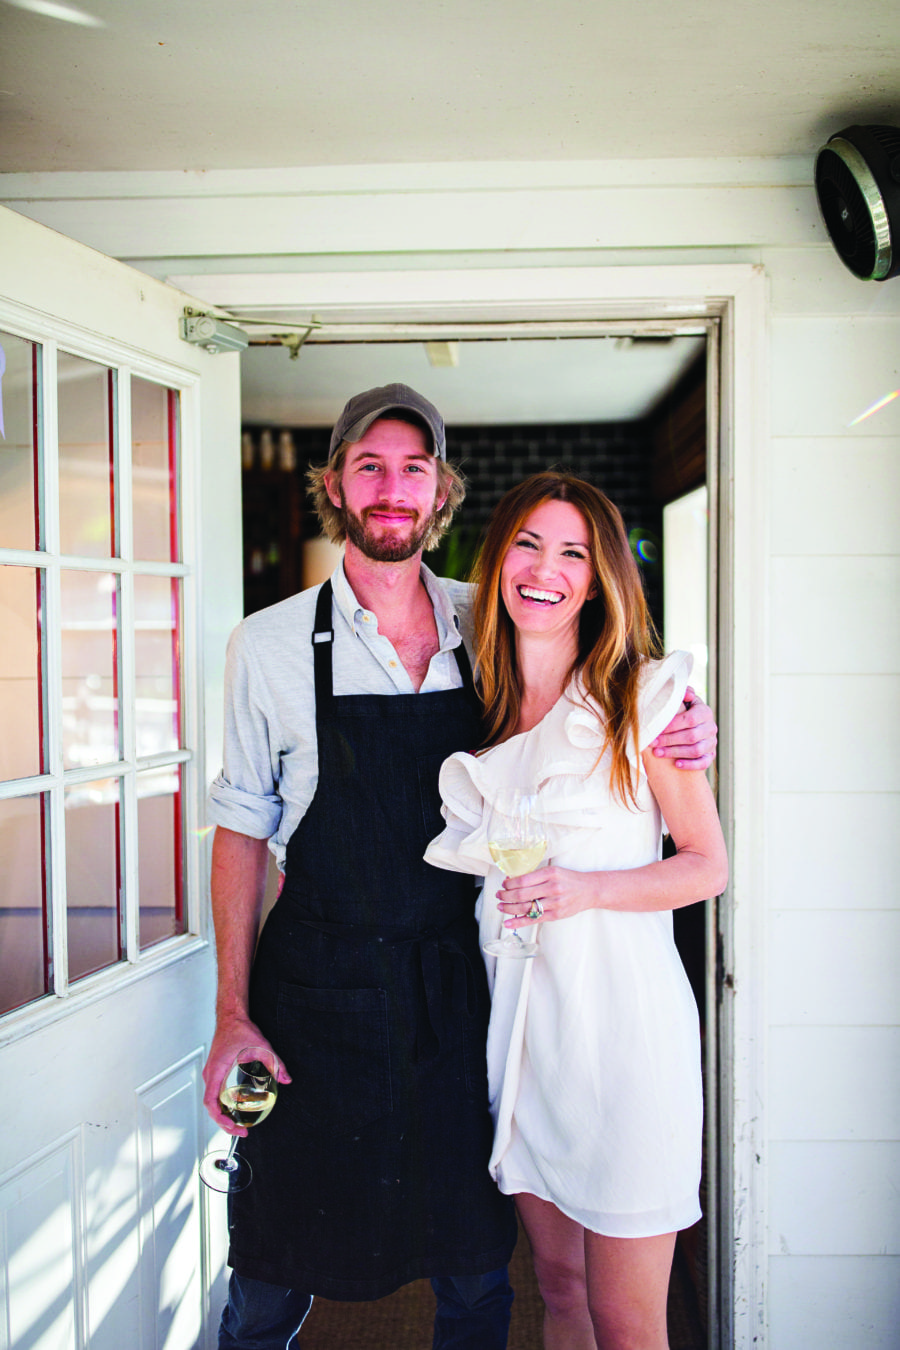 Chef Kurt Schumm of Tybee Island Fish Camp with his wife Sarah